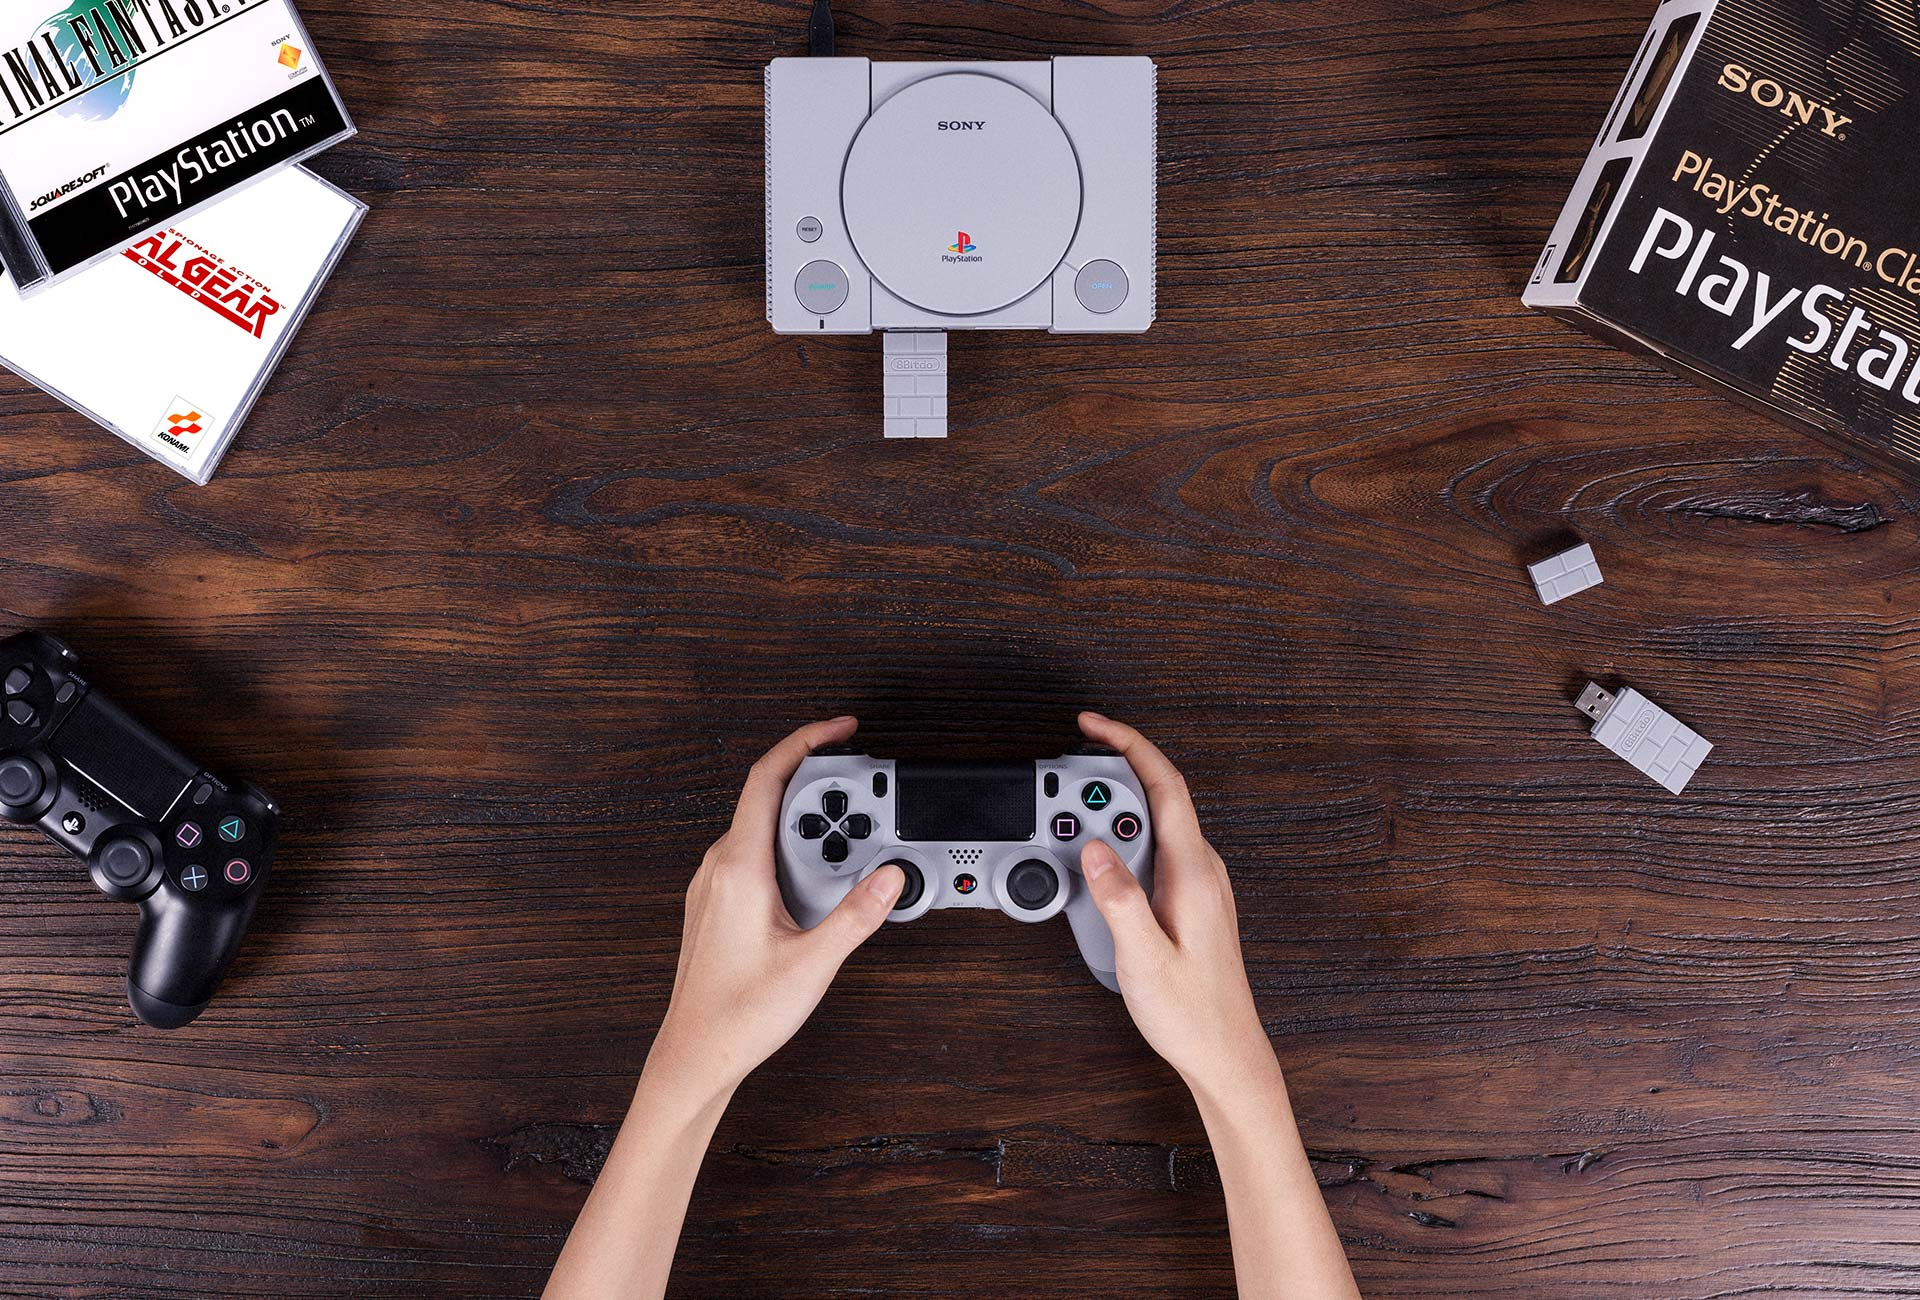 8bitdo playstation classic 2 - Adapter PS3/PS4 to PS2 Controller otrzymał wsparcie dla PlayStation Classic